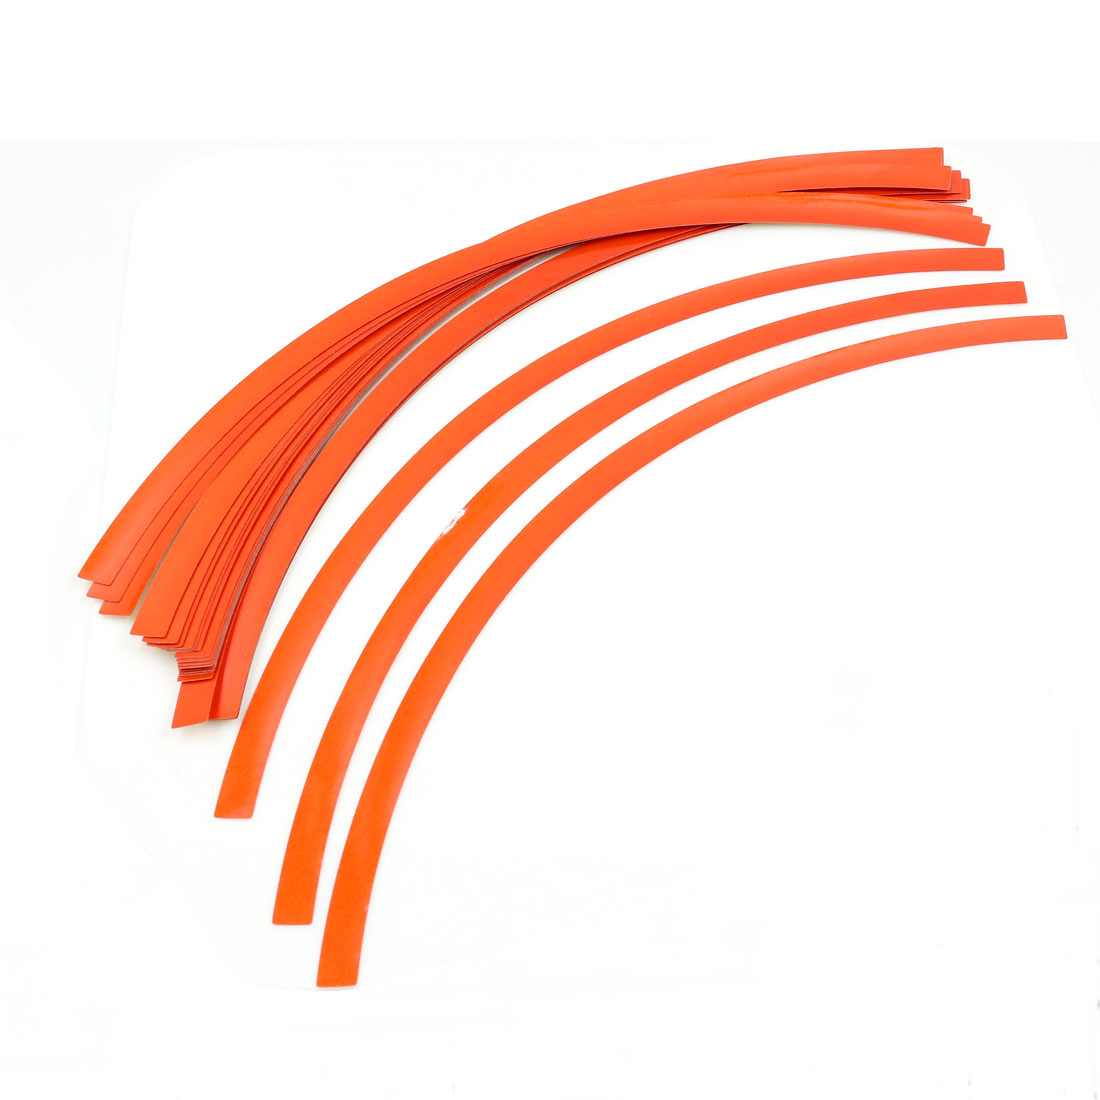 32 Pcs 31cm Length Orange Adhesive Car Motorcycle Wheel Rim Tape Sticker Strip